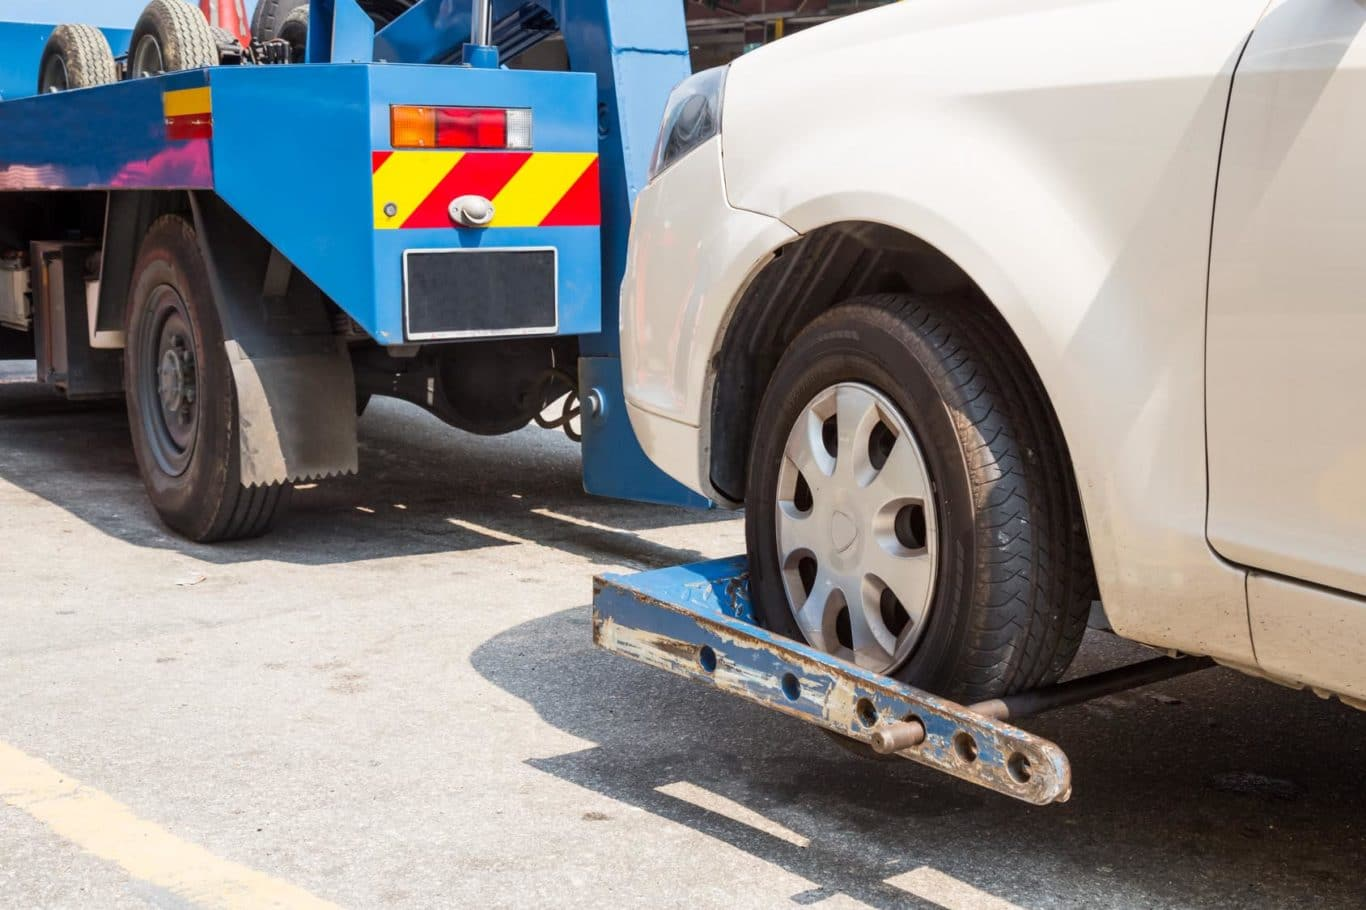 Kilpedder expert Car Towing services